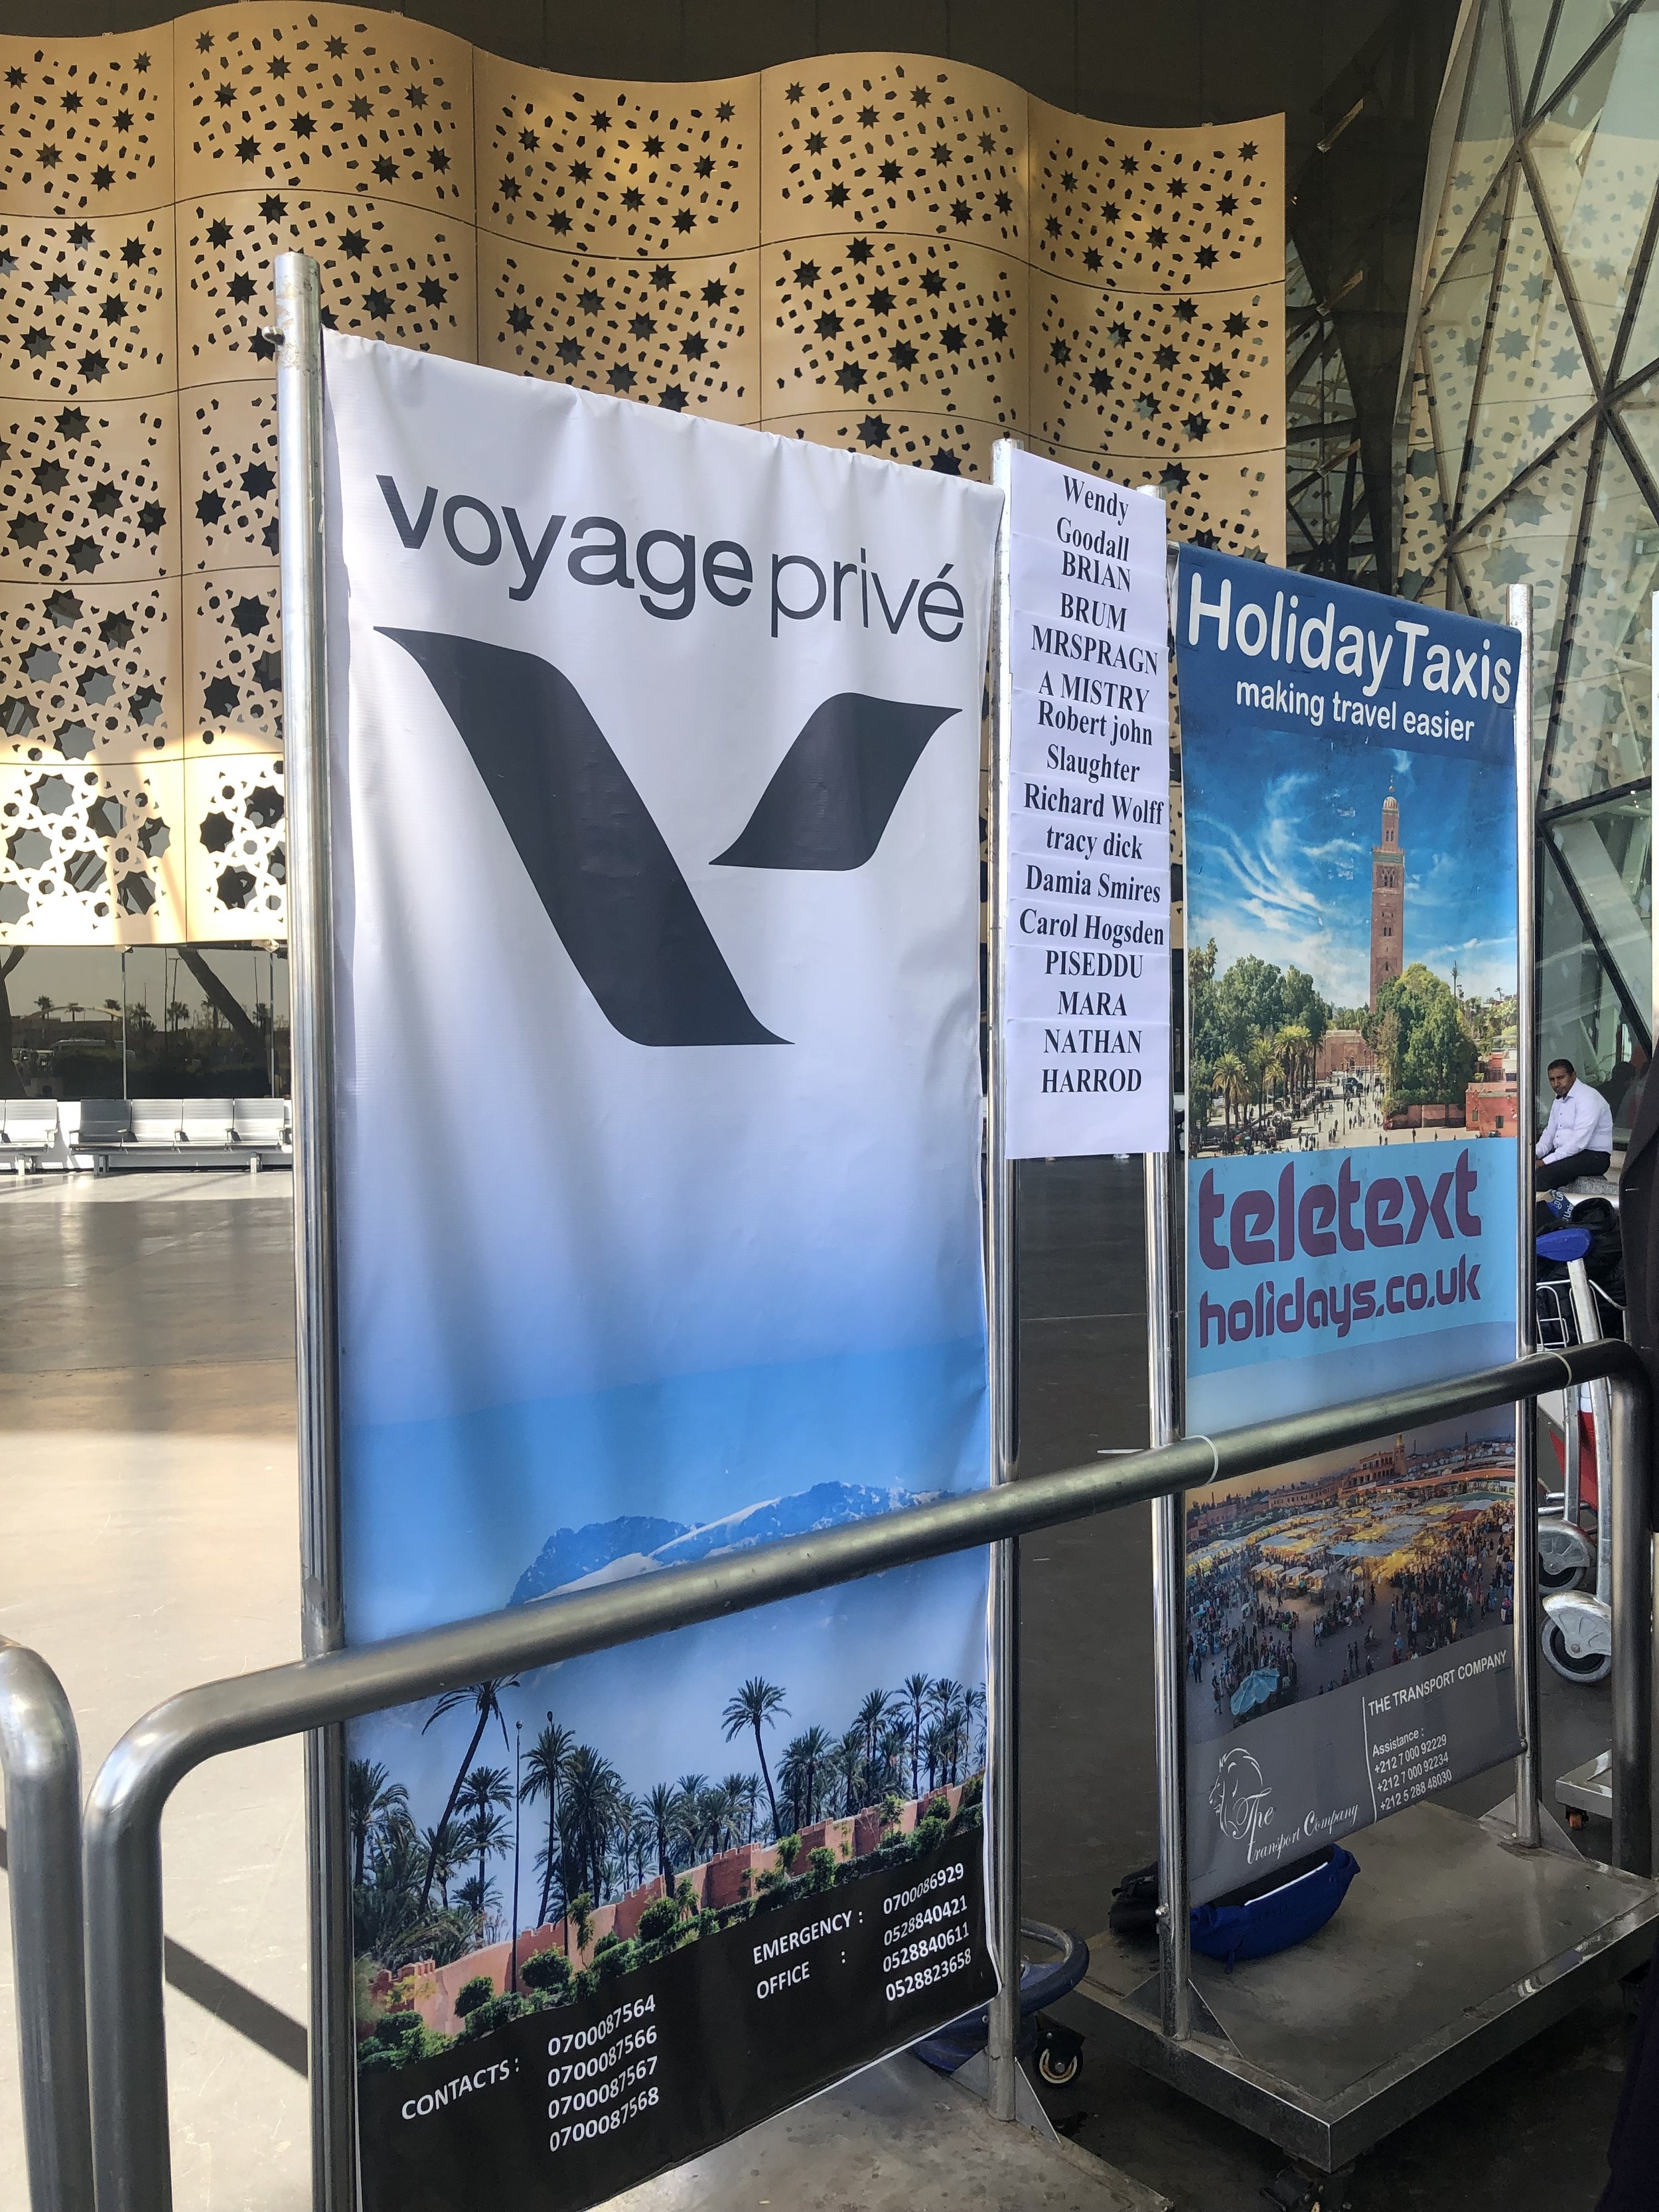 Meet our team upon arrival and collect your Welcome Letter ! - Just outside the Arrival Terminal on your right you will find our team next to our partner's banners.